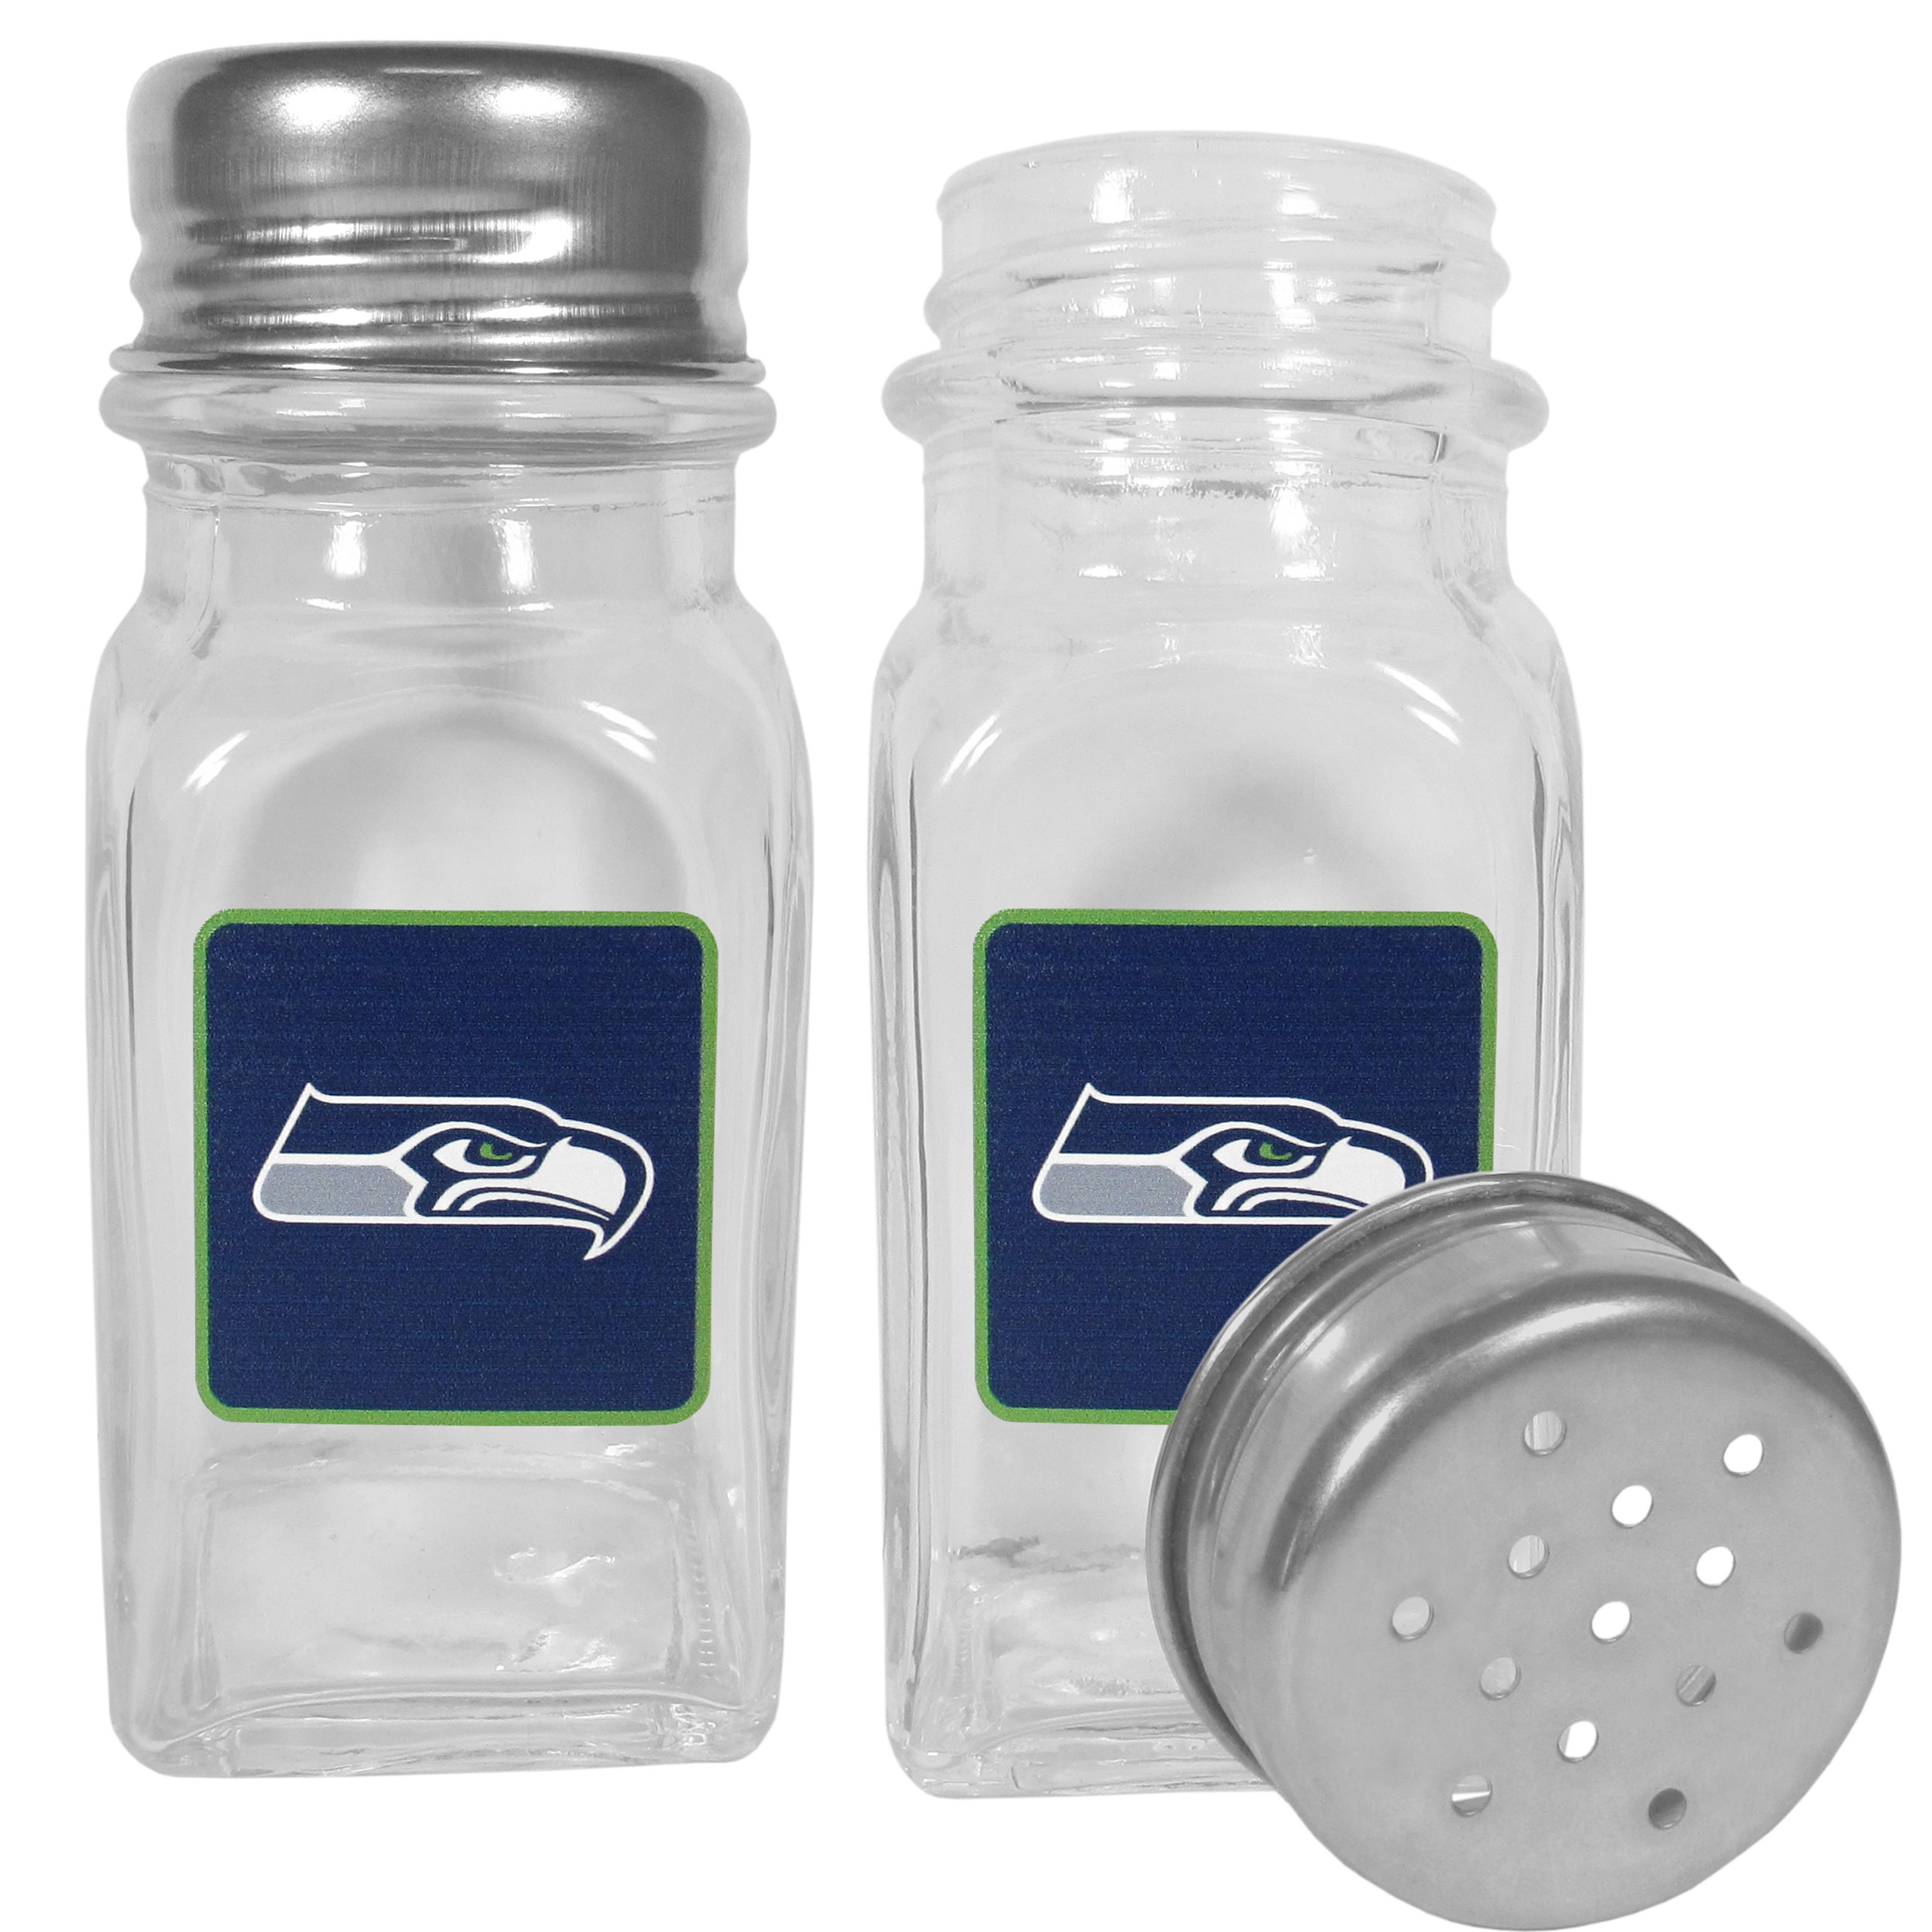 Seattle Seahawks Graphics Salt & Pepper Shaker - No tailgate party is complete without your Seattle Seahawks salt & pepper shakers featuring bright team logos. The diner replica salt and pepper shakers are glass with screw top lids. These team shakers are a great grill accessory whether you are barbecuing on the patio, picnicing or having a game day party.